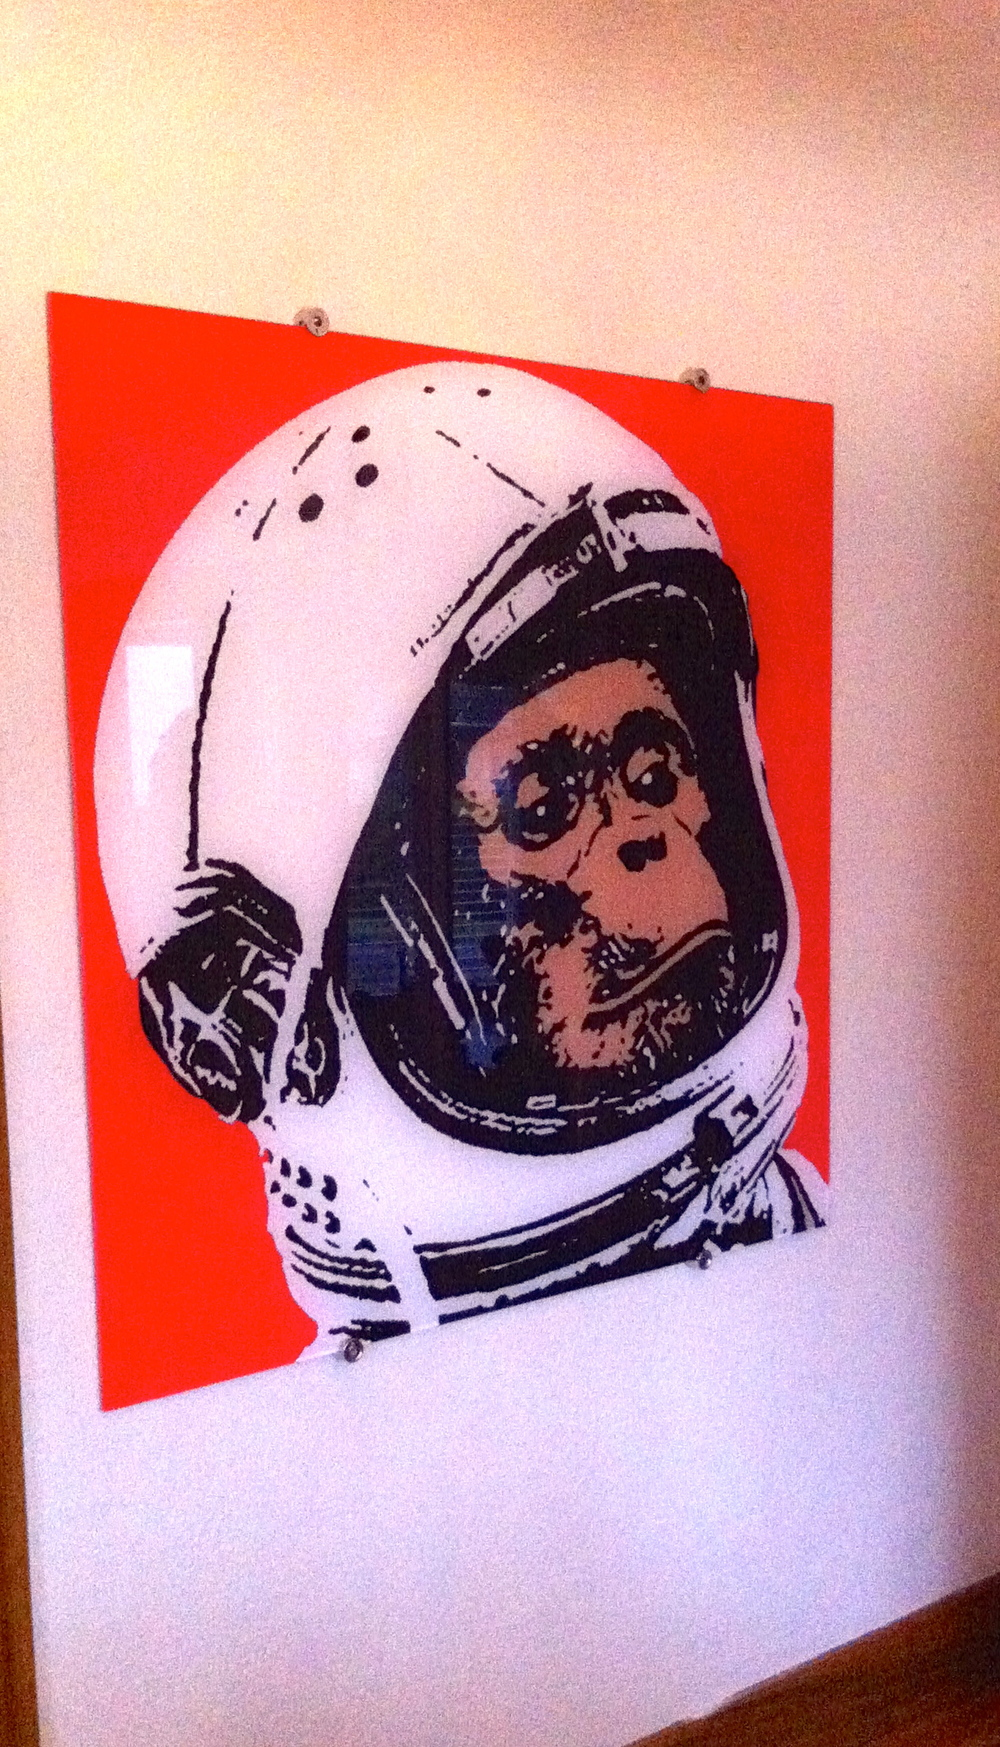 Space Monkey. Private Collection